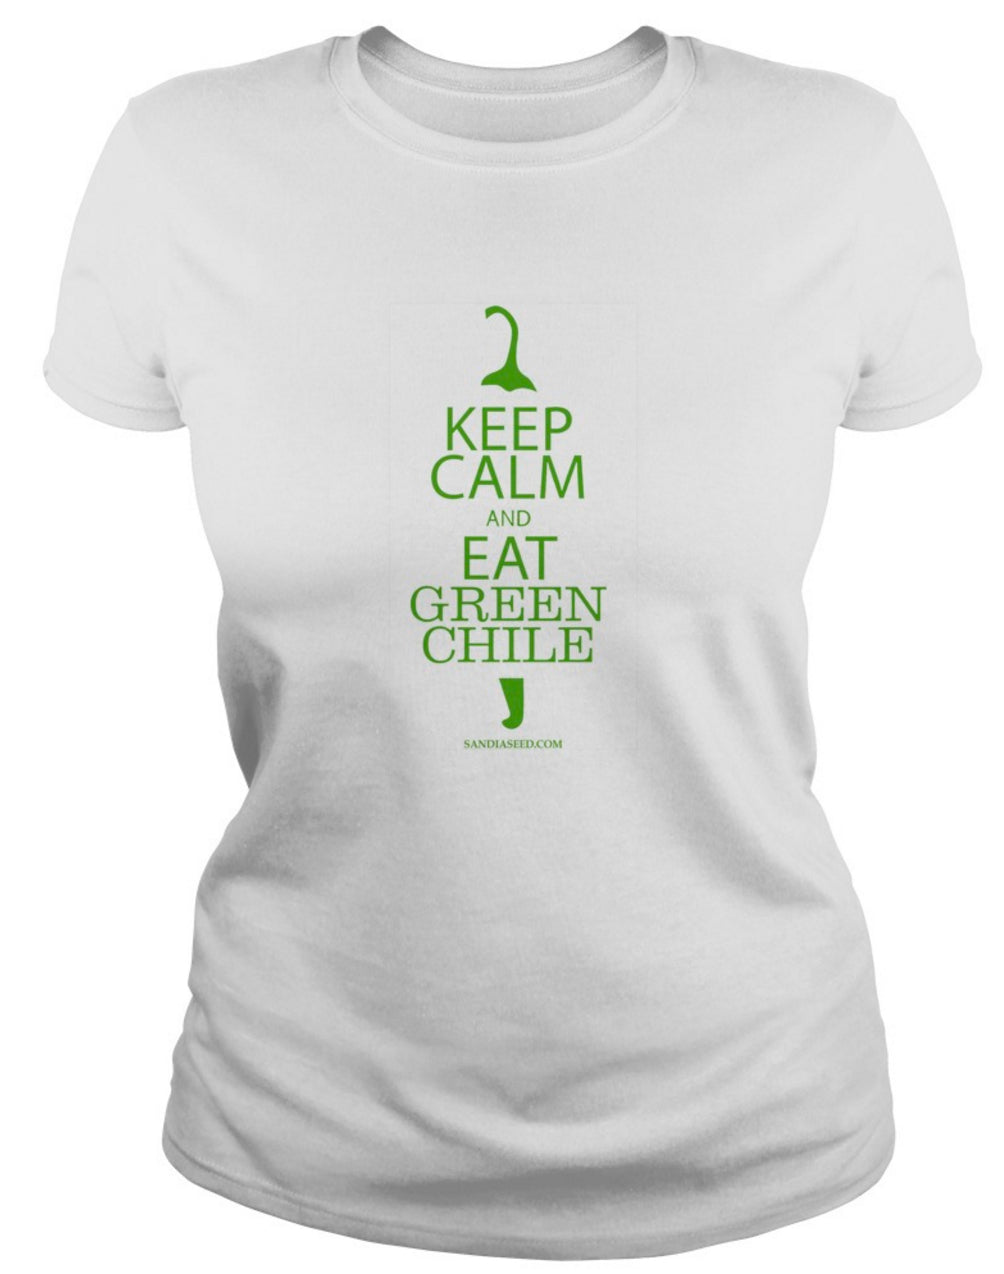 Green Chile Shirt